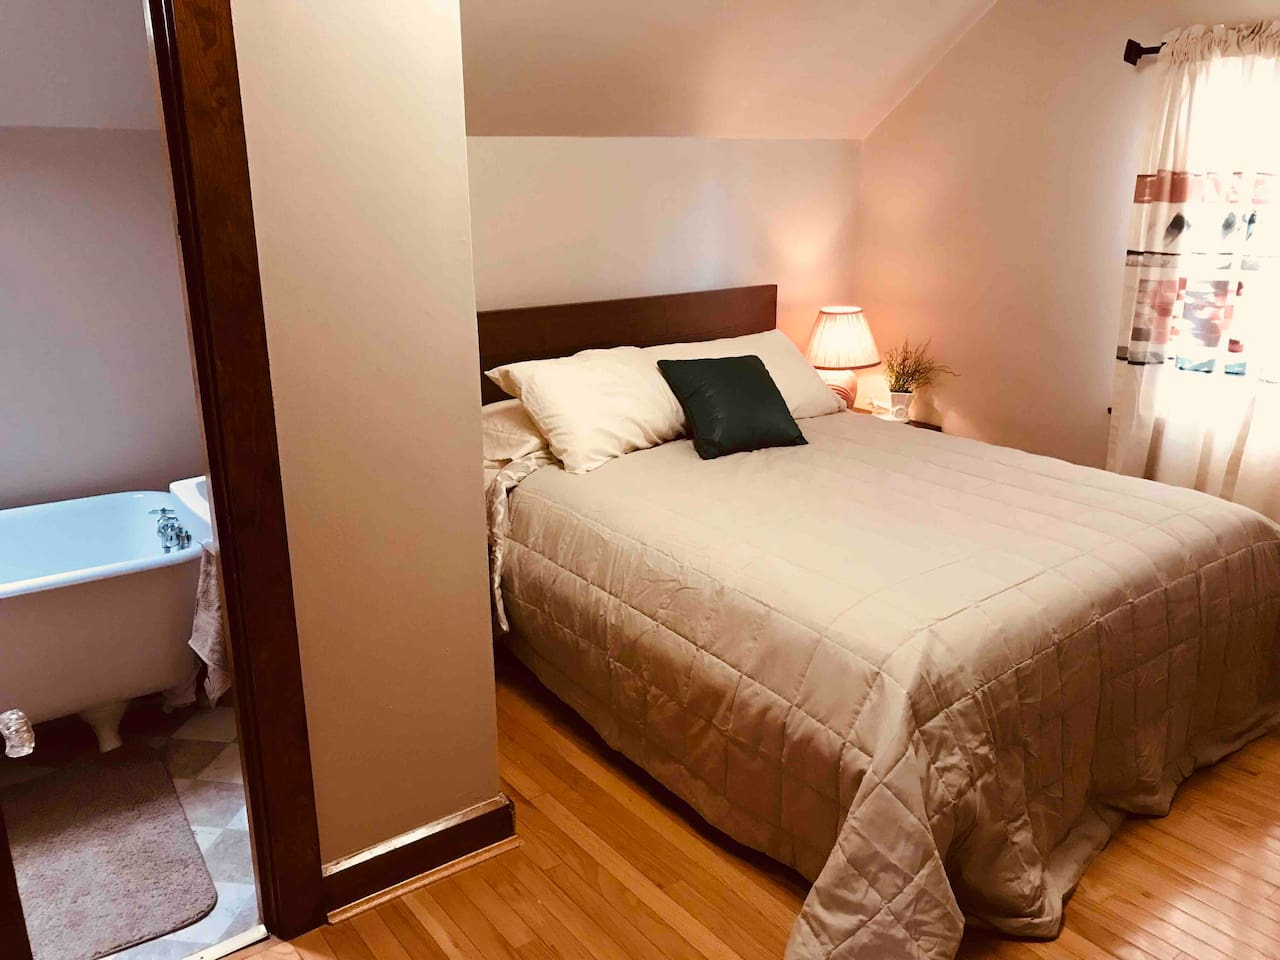 This apartment has 4 bedrooms, a living/dining room, kitchen and 2 full bathrooms. It is situated on the second and third floors of our 100 year old home. We've filled every room abundantly with details and amenities with your comfort in mind.